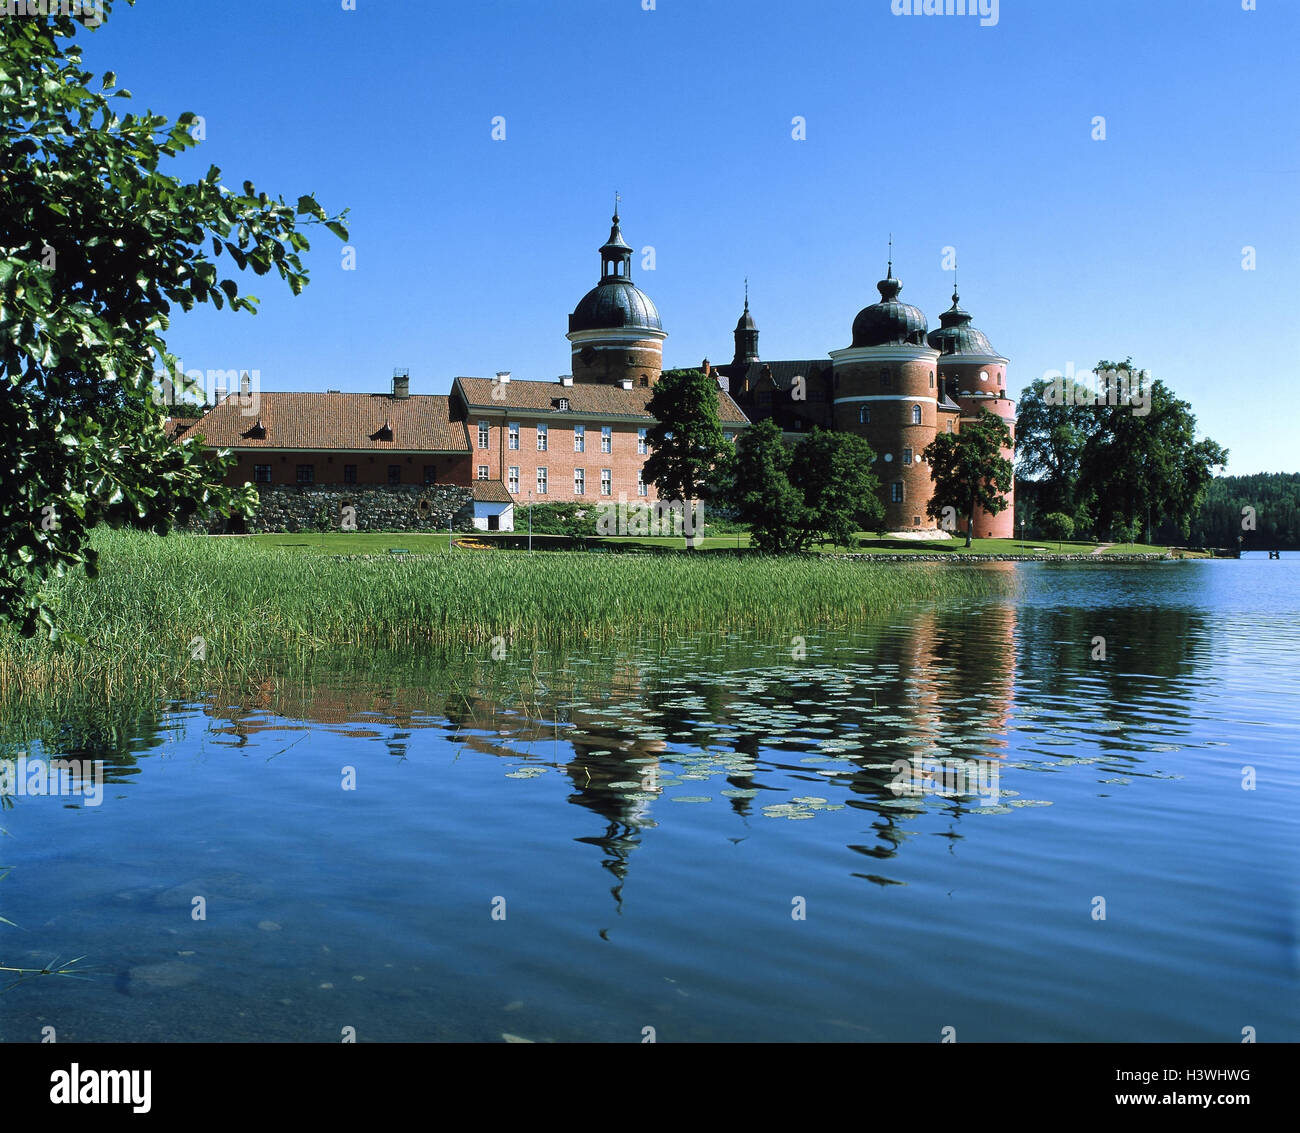 Sweden, Mariefred, castle grip cross-beam, lake, Europe, Scandinavia, Södermanland, Mälarsee, castle, - Stock Image